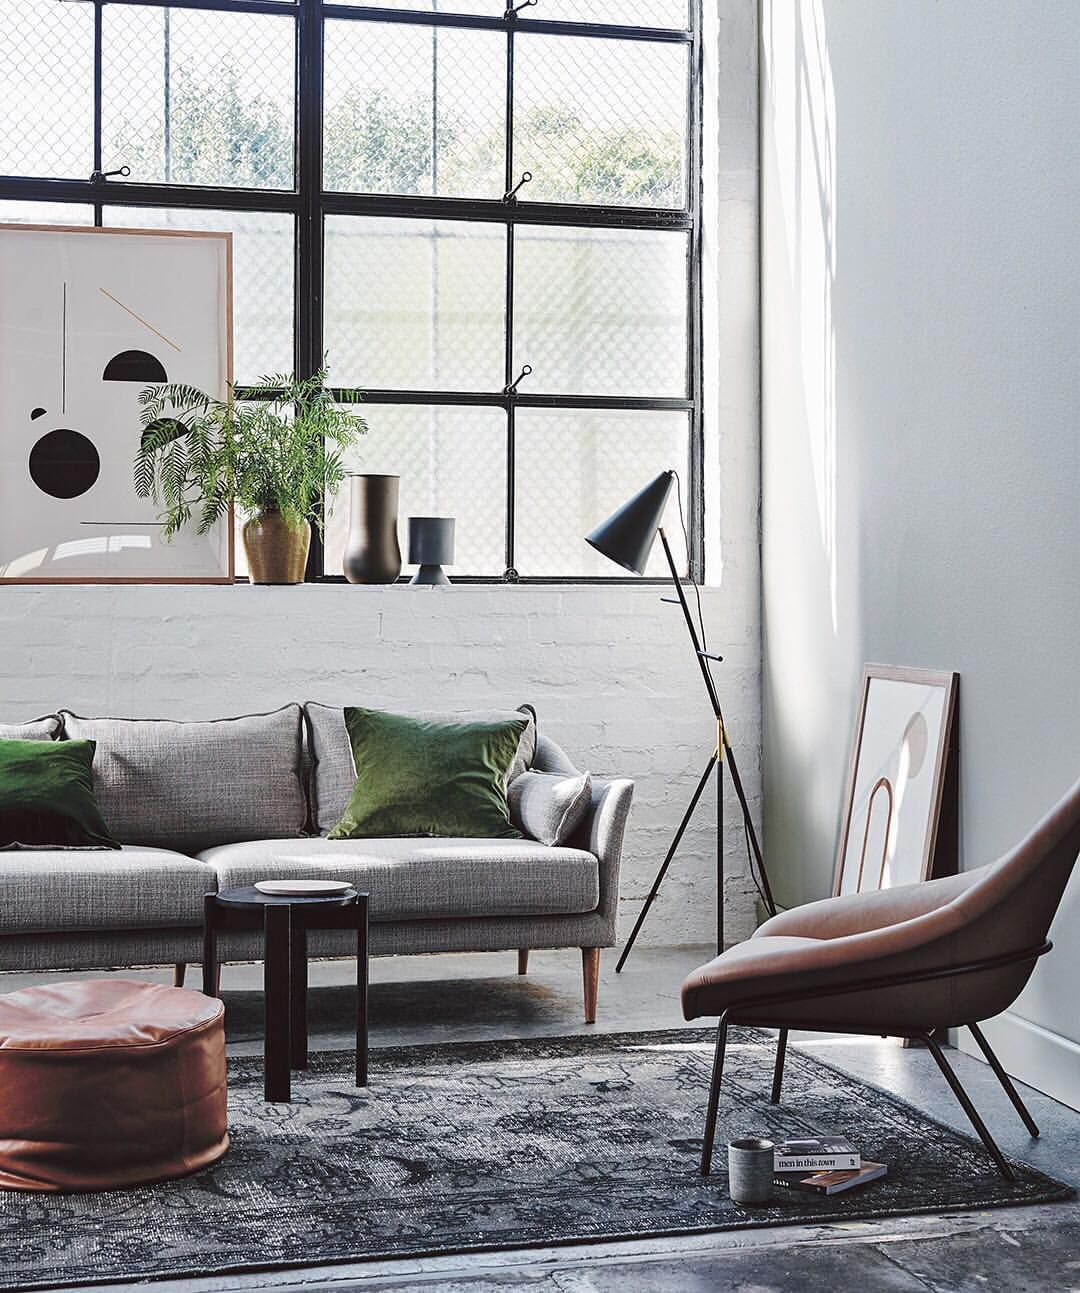 956 likes 4 comments west elm westelm on instagram u201cspotted